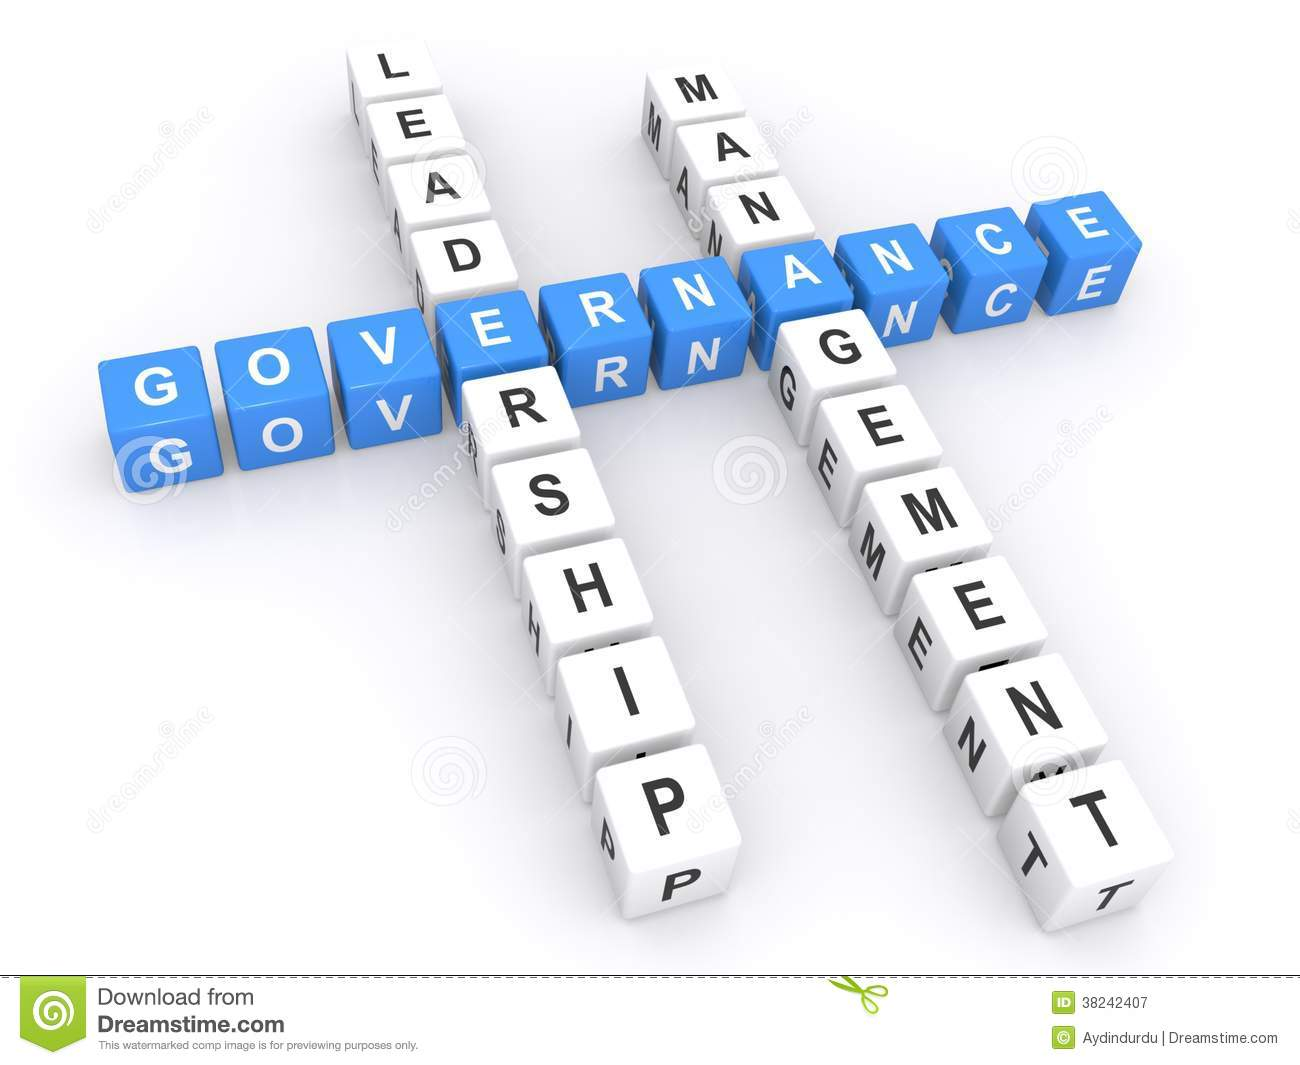 leadership governance and ethics Start studying business ethics: ch 5, ethical leadership and corporate governance learn vocabulary, terms, and more with flashcards, games, and other study tools.